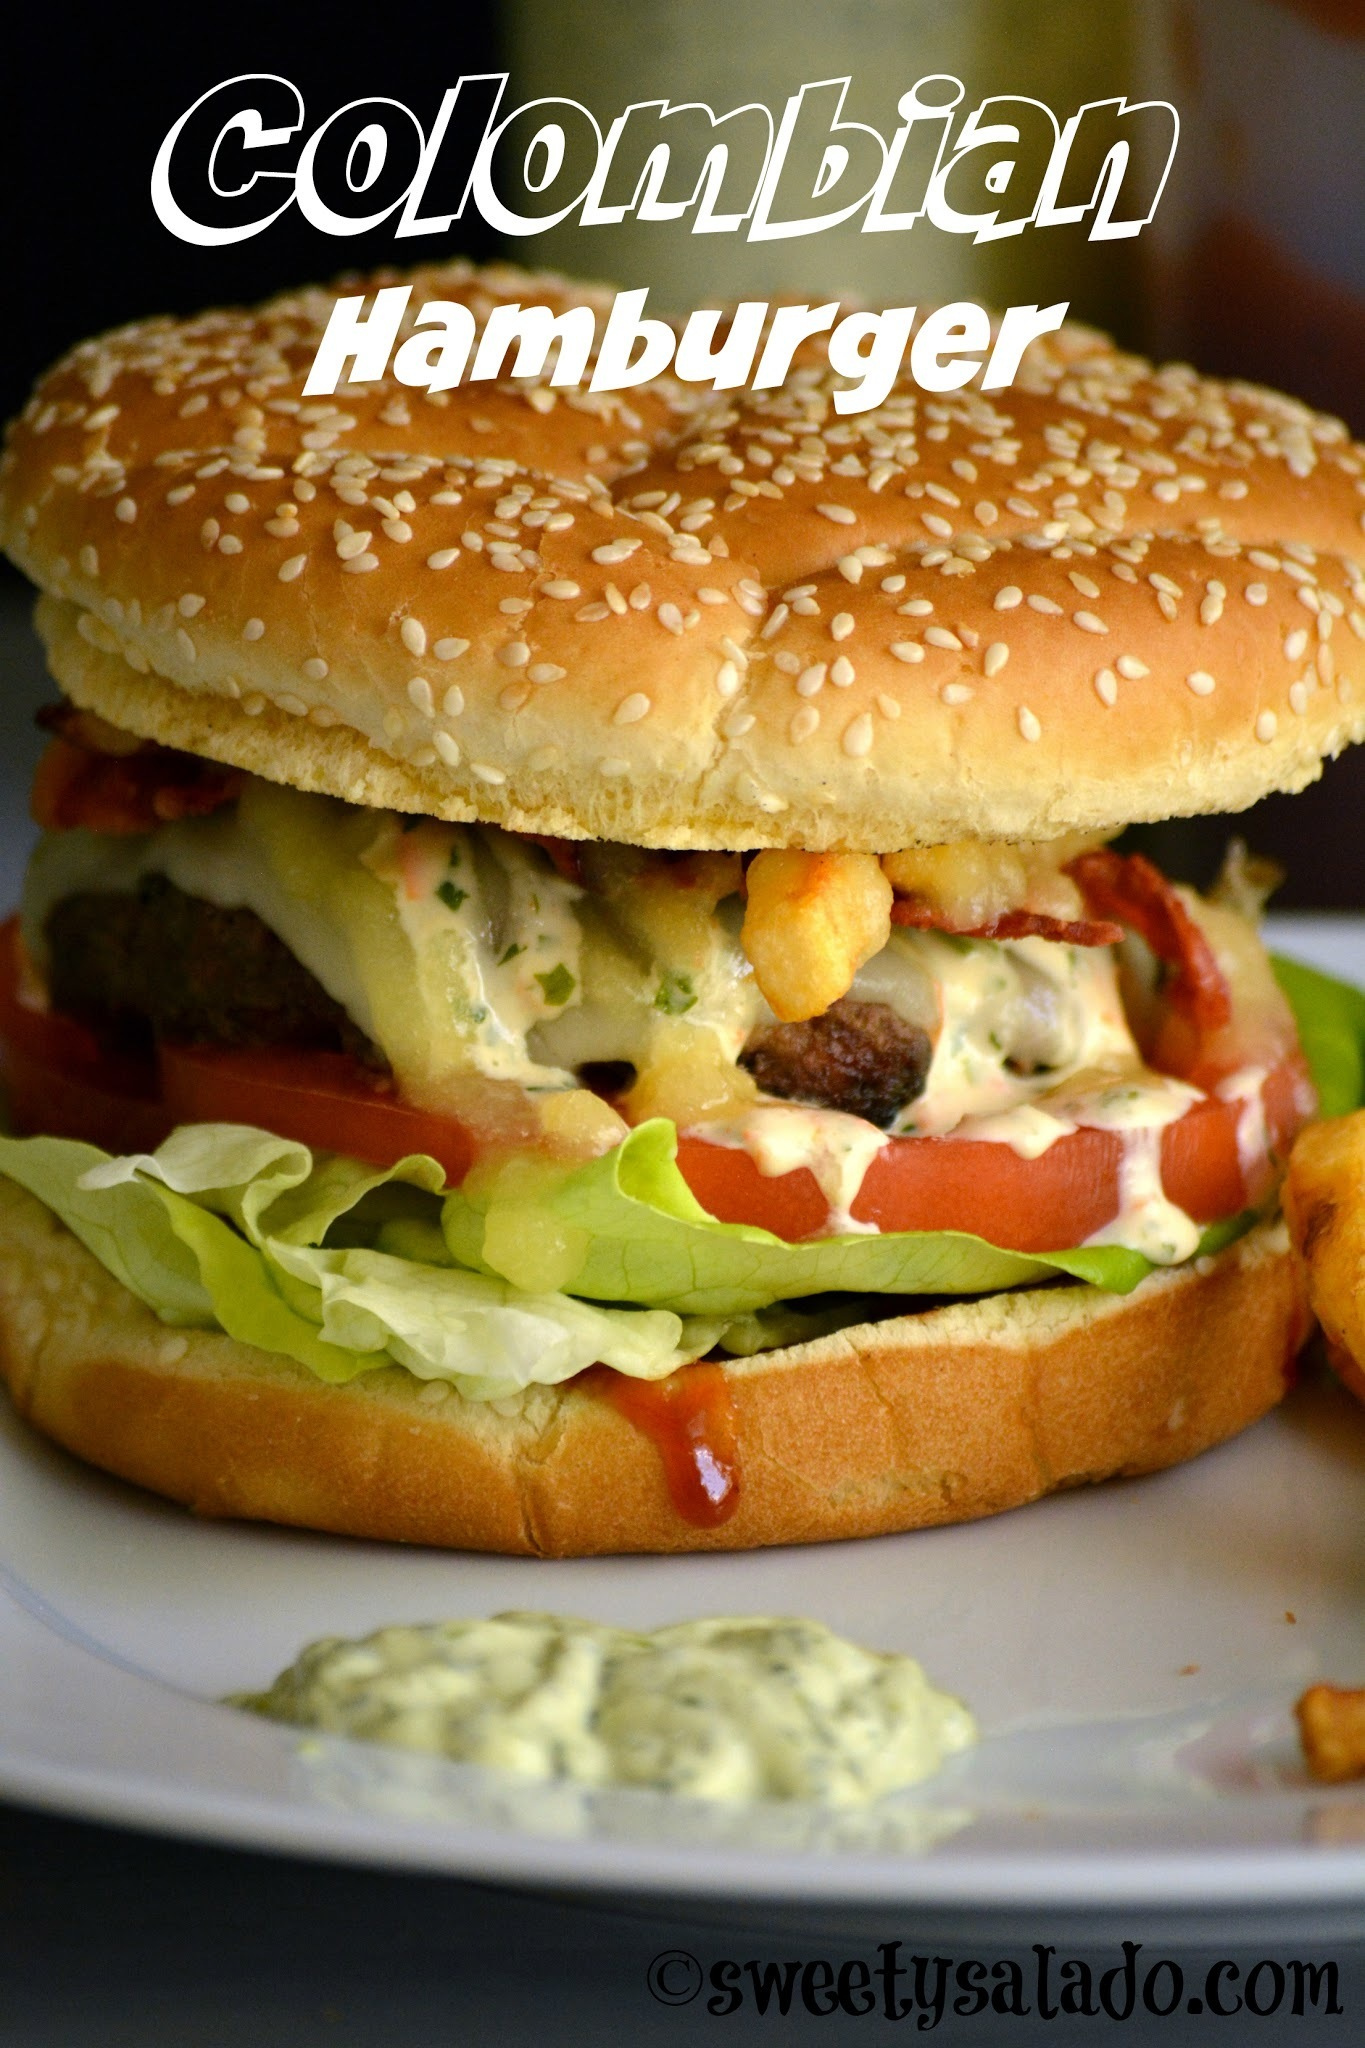 Colombian Hamburger